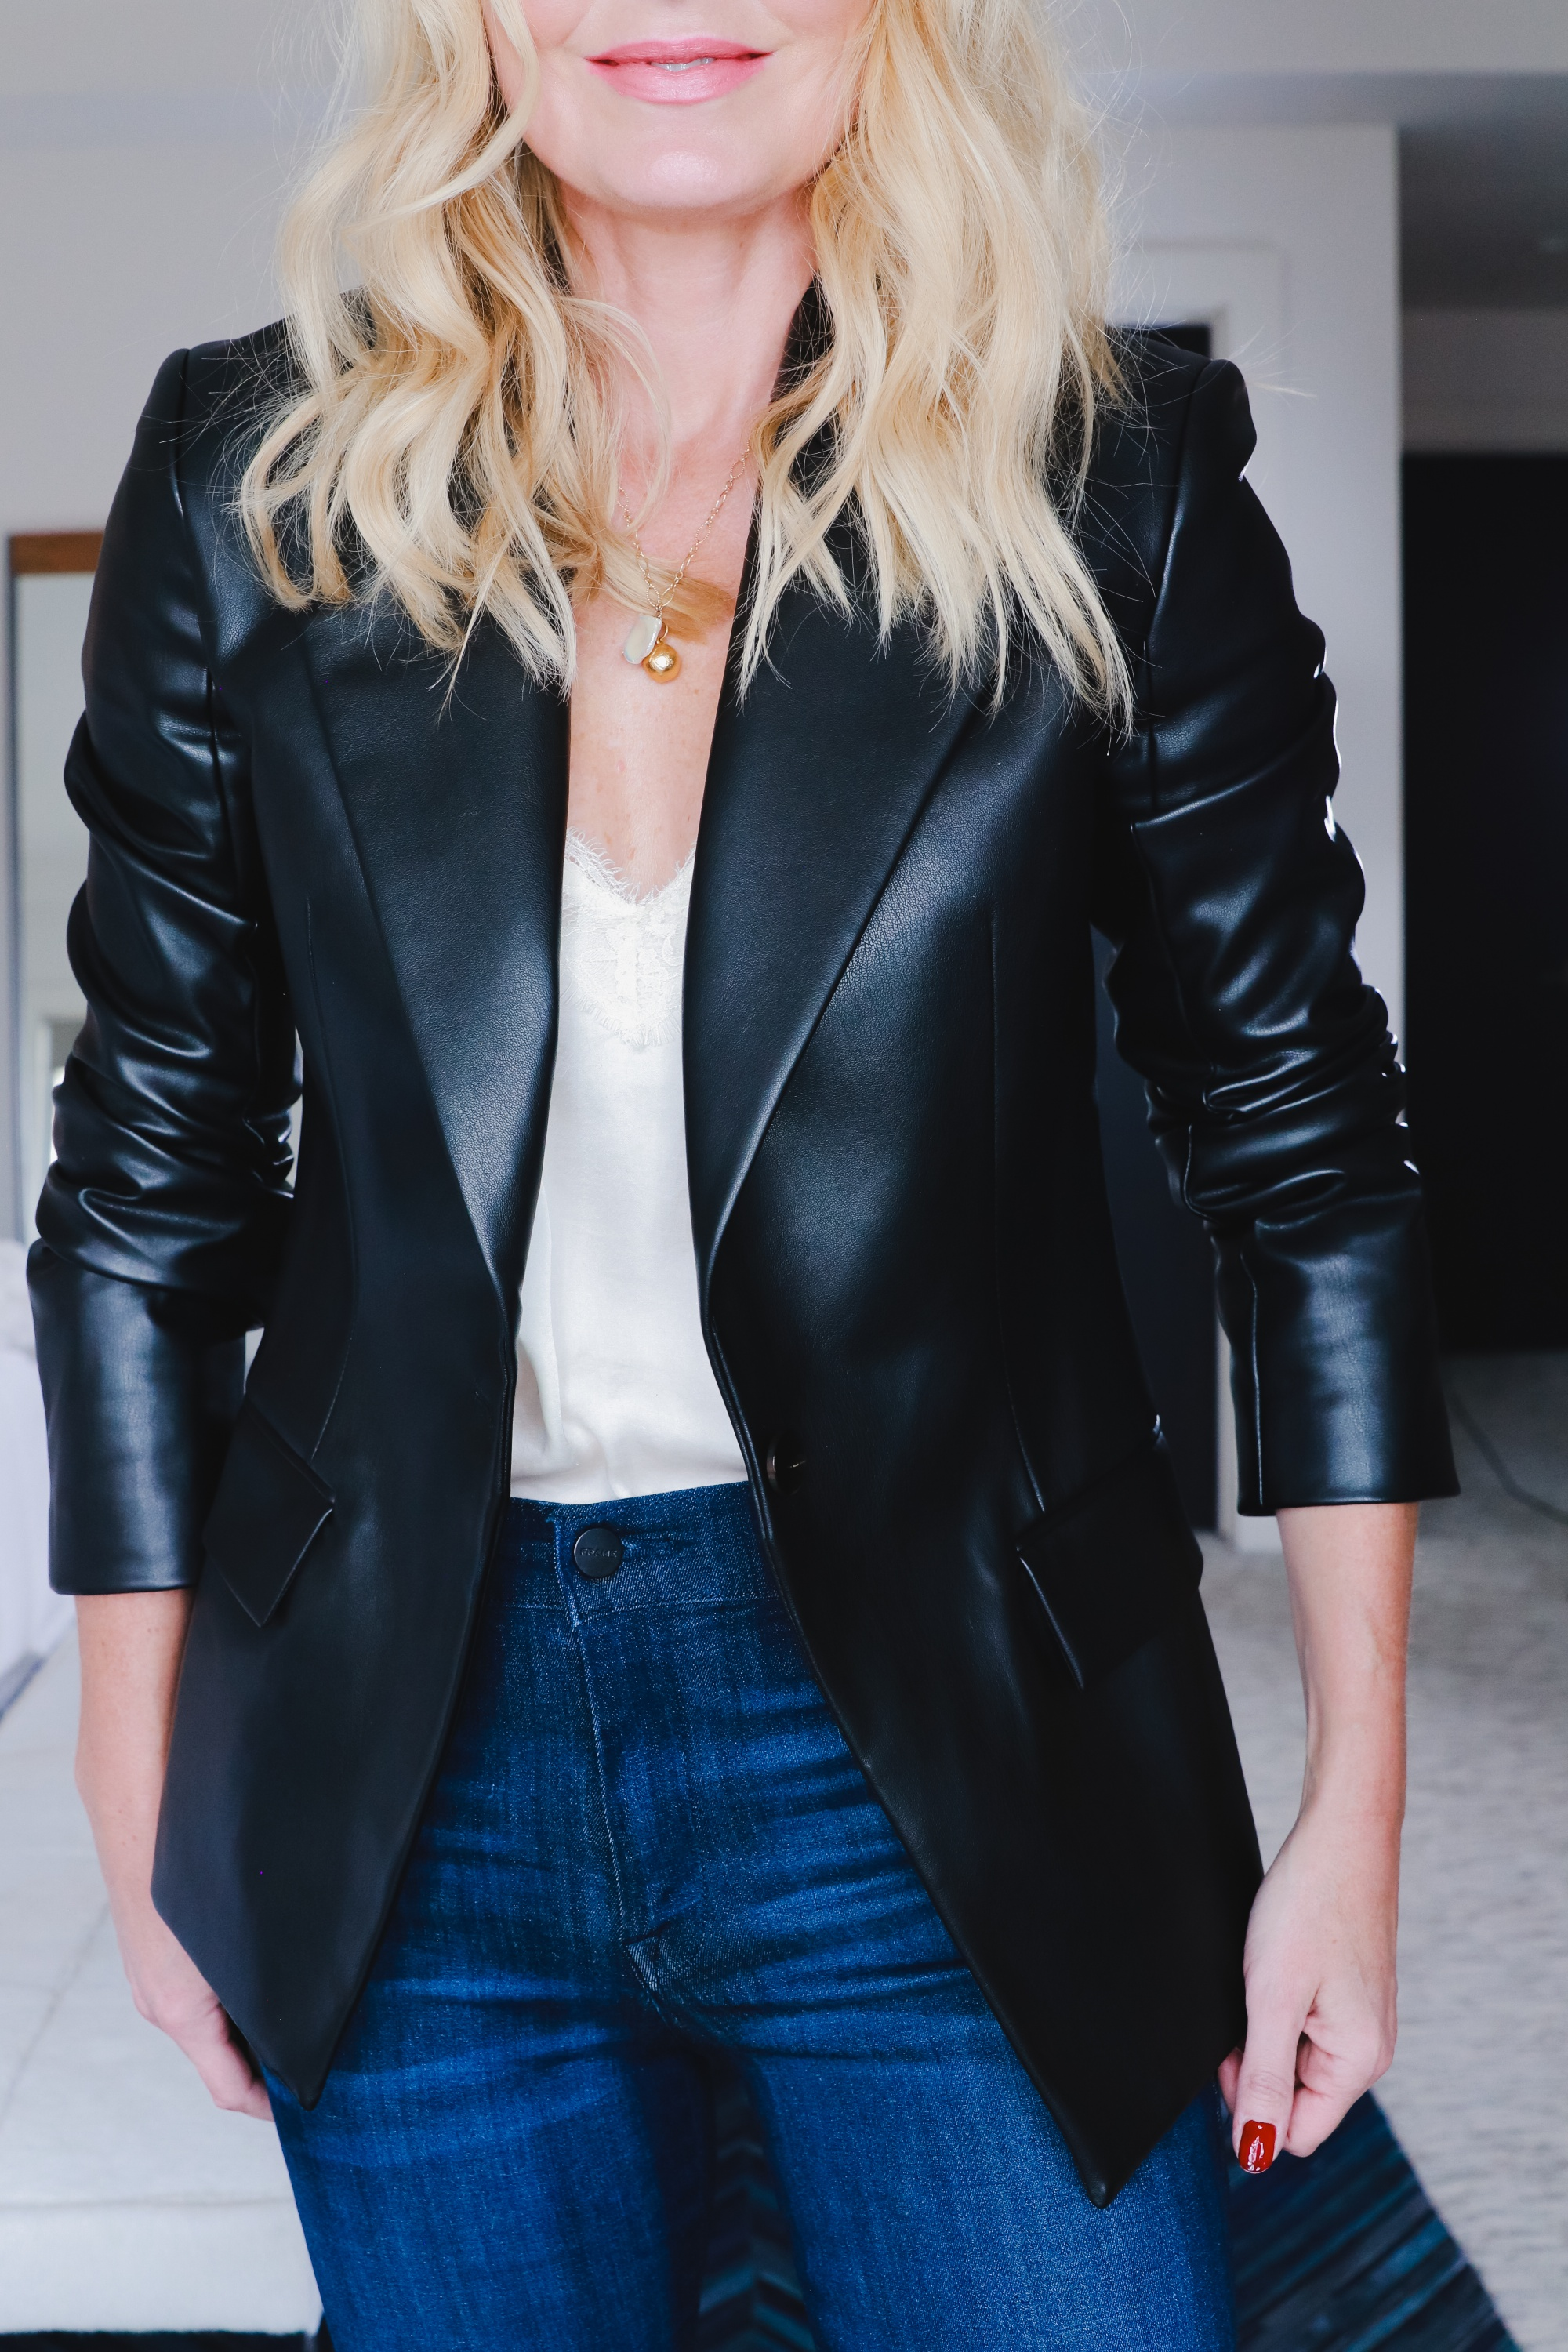 Boots With Jeans, Erin Busbee of Busbee Style sharing the complete guide to wearing jeans and booties wearing Frame skinny jeans, Louise et Cie black booties, a black Theory faux leather blazer, and white BP lace cami in her home in Telluride, Colorado